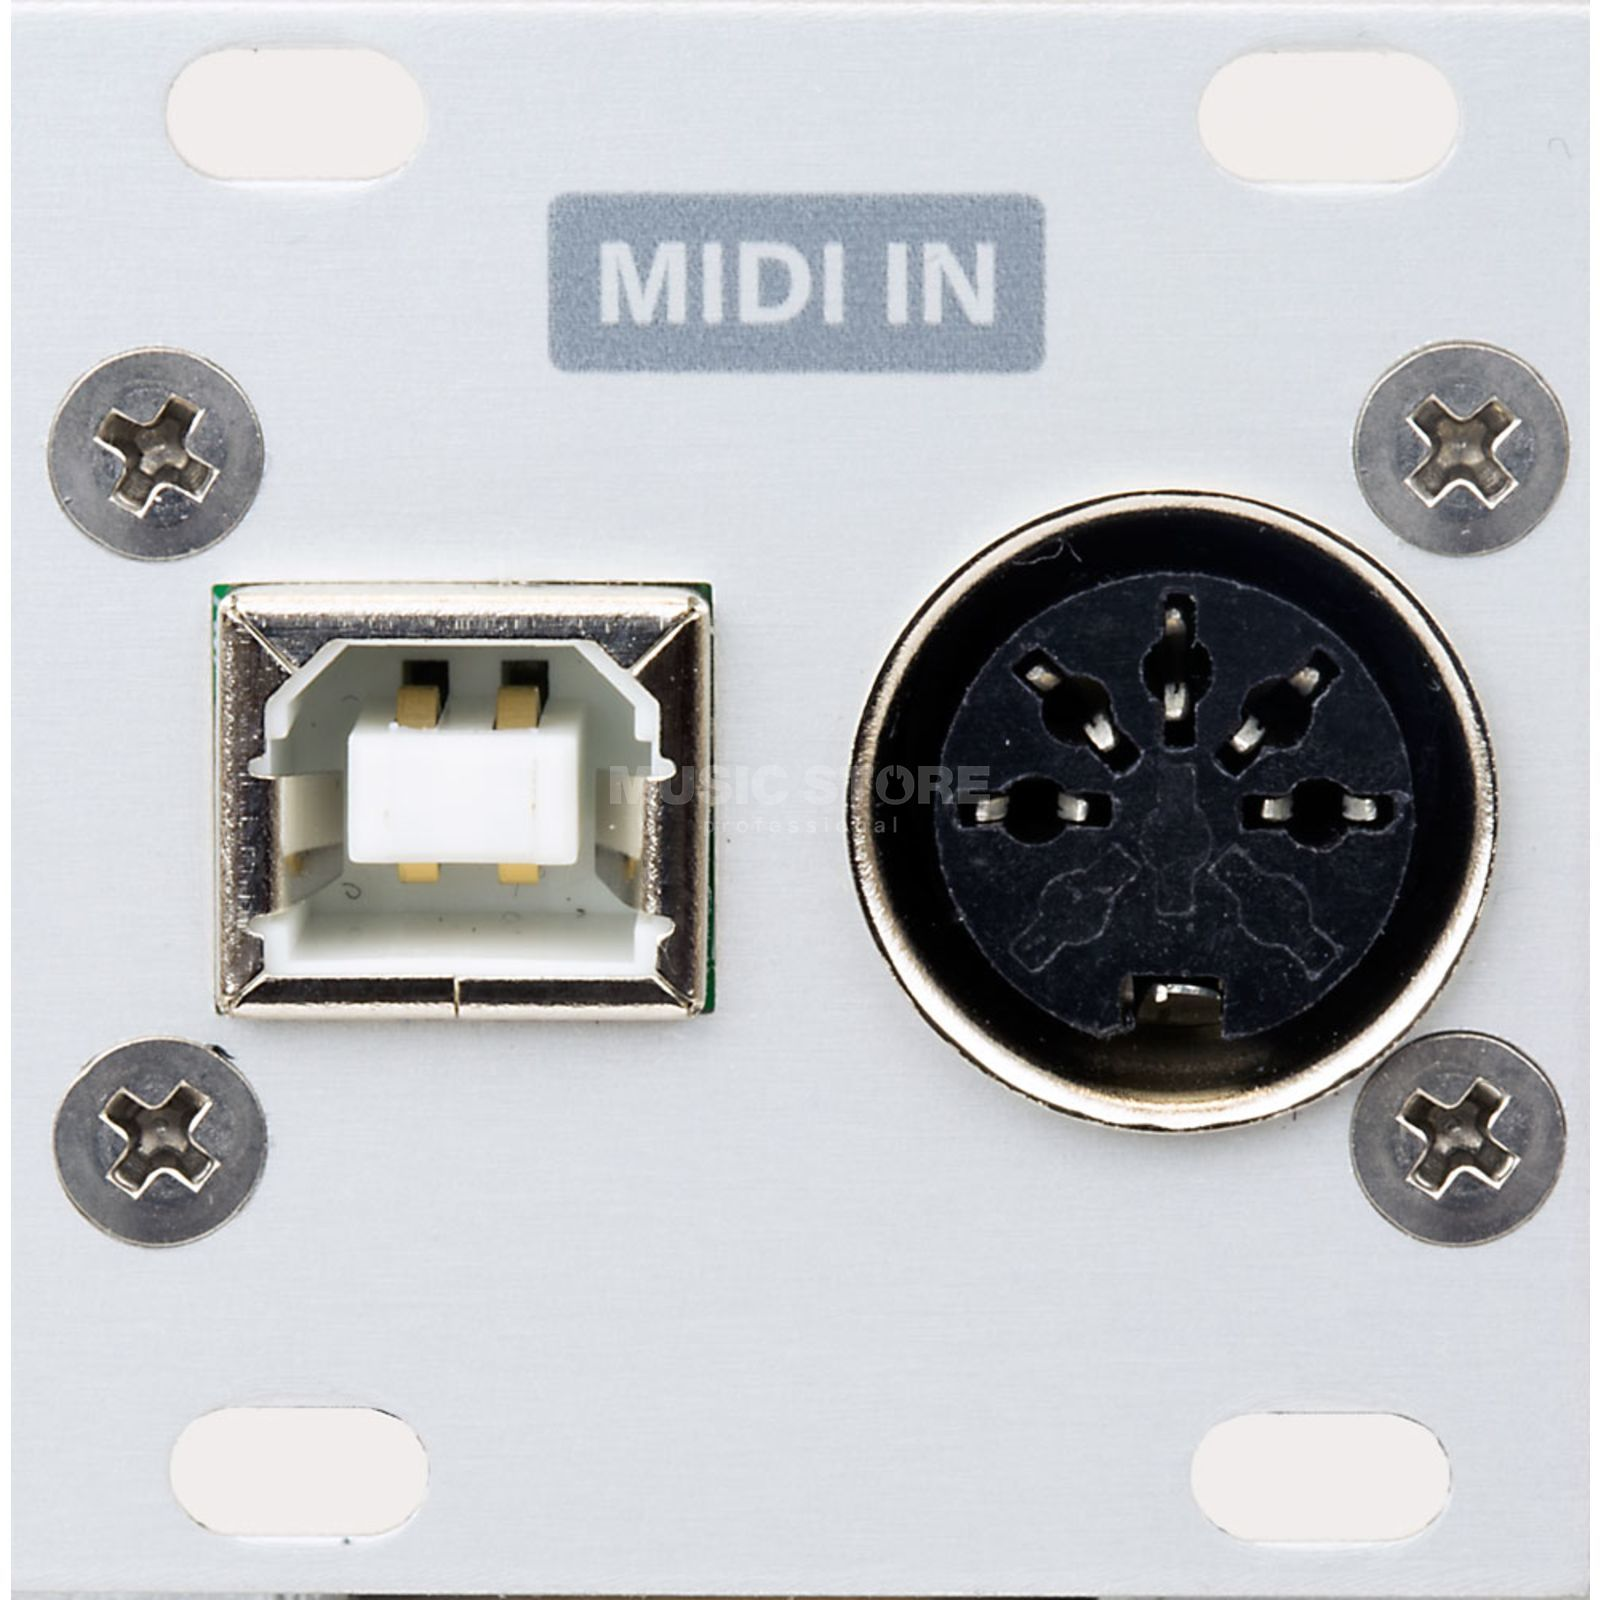 Intellijel 1U Midi JACKS Product Image